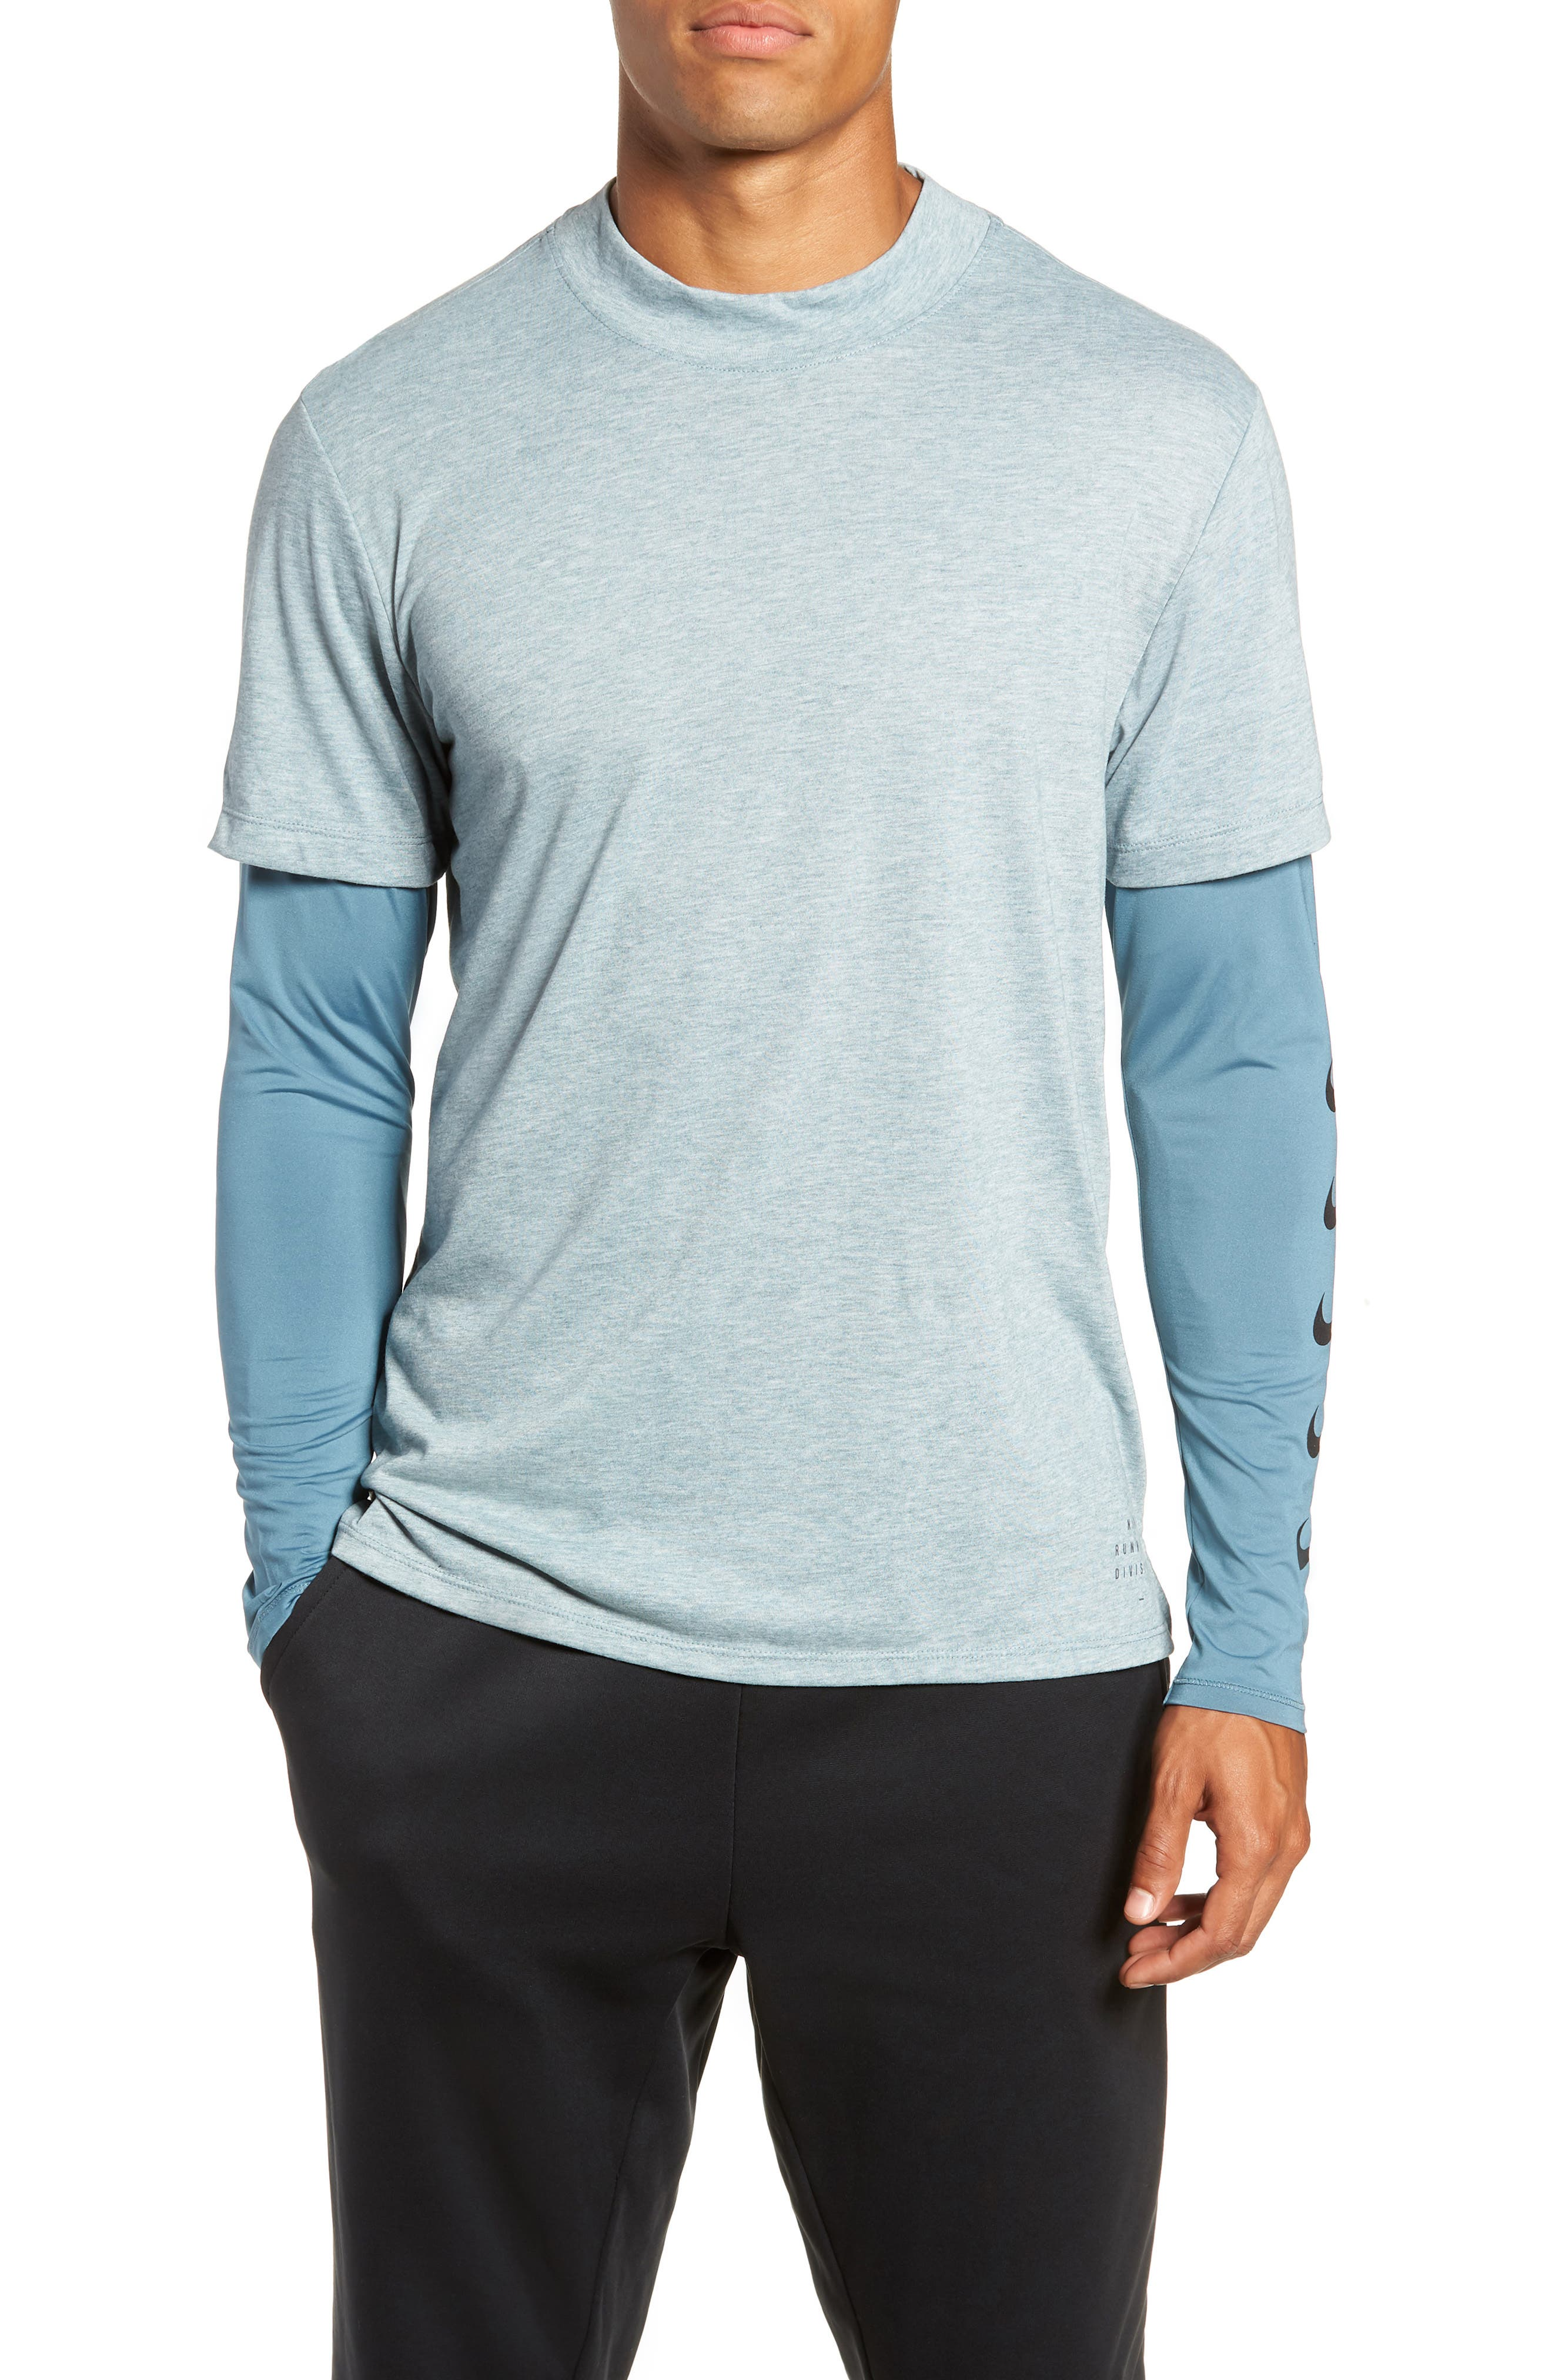 ce85f0d6 Nike Breathe Rise 365 Layered Long Sleeve T-Shirt Blue/green